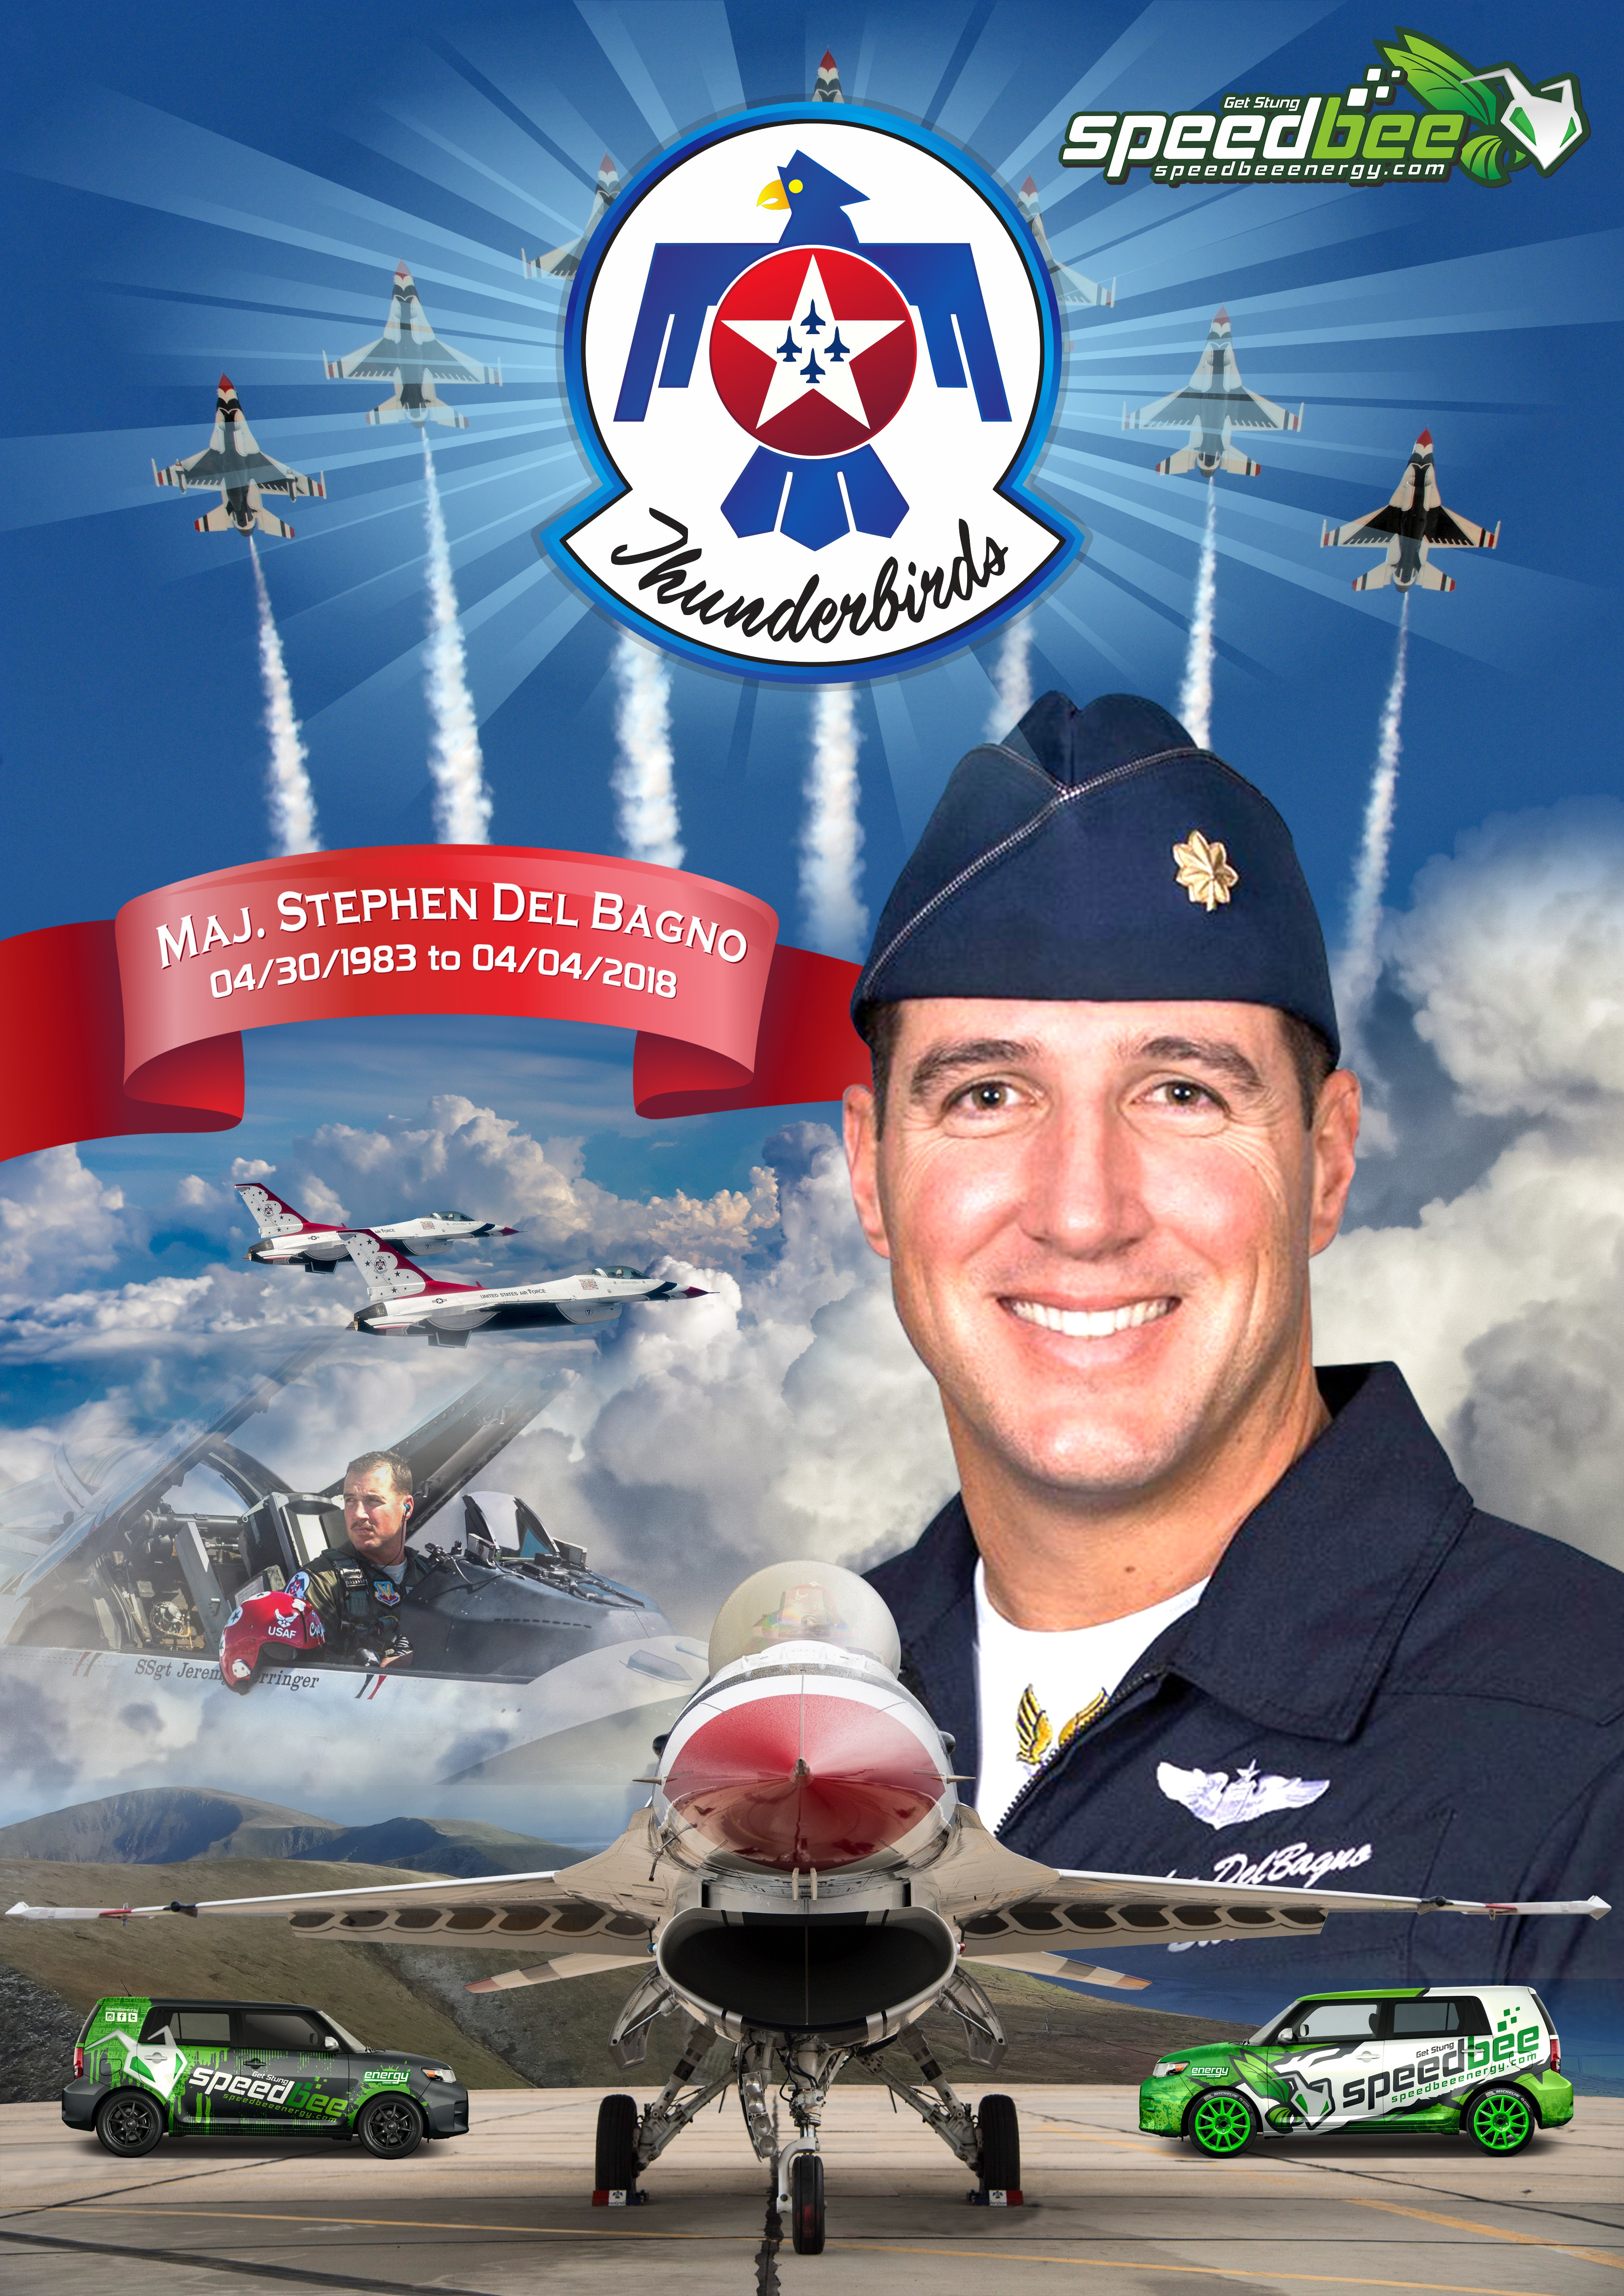 Memorial Photo to incorporate photo of the person, speedbee logos, and airforce thunderbirds logos